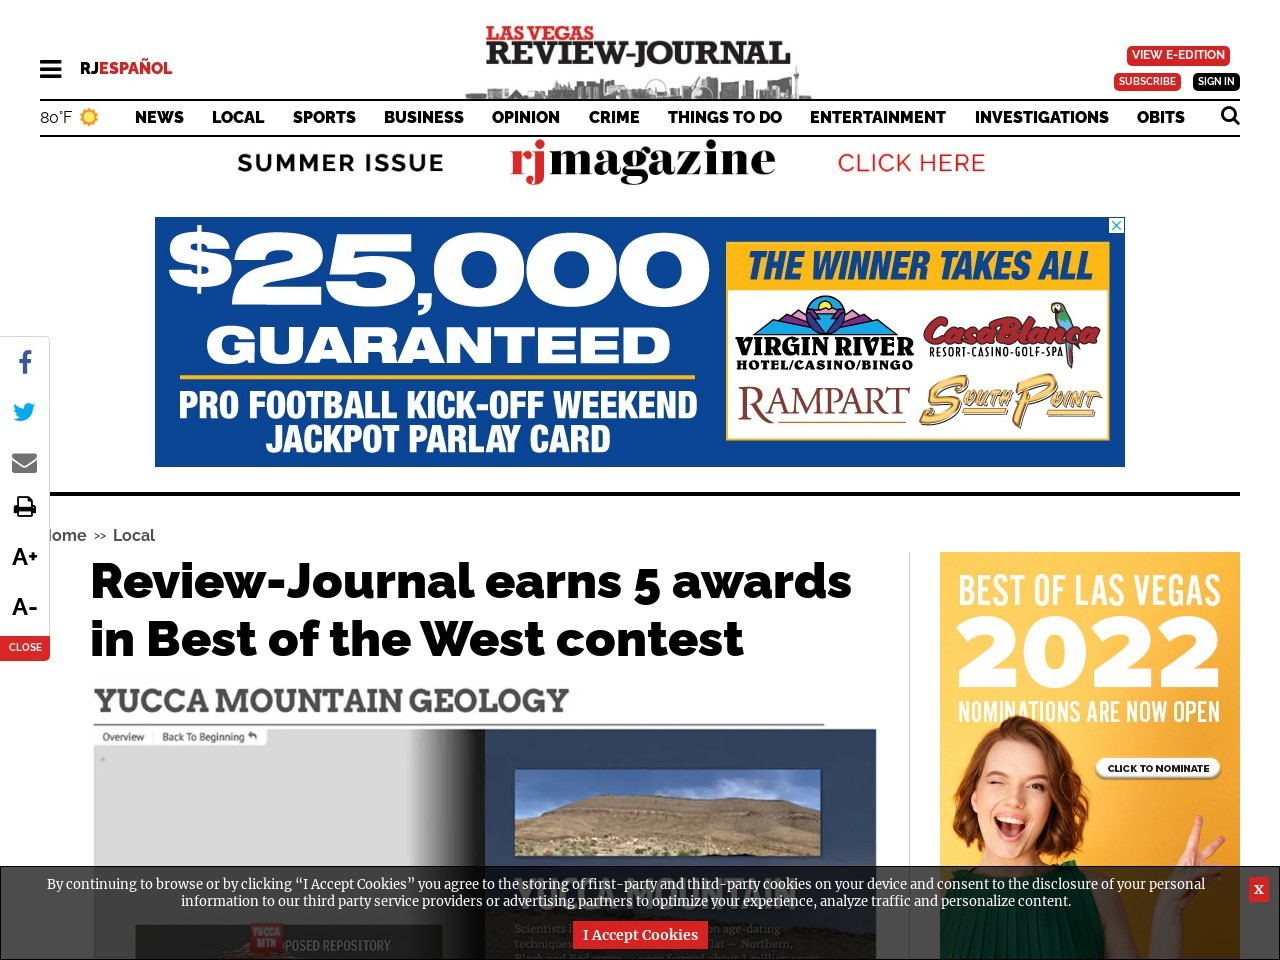 Review-Journal earns 5 awards in Best of the West contest